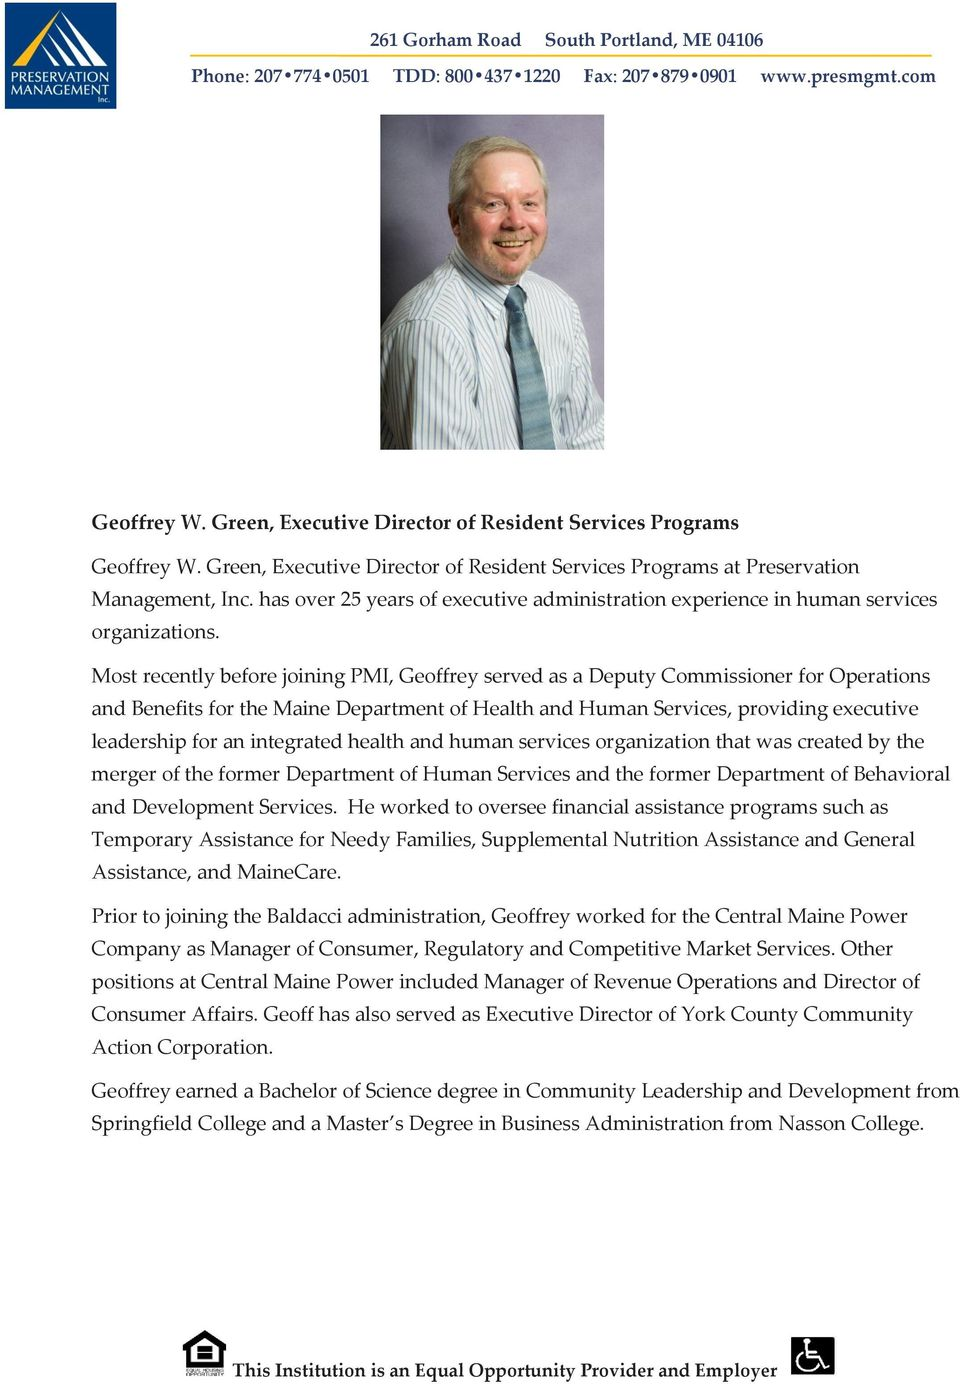 Most recently before joining PMI, Geoffrey served as a Deputy Commissioner for Operations and Benefits for the Maine Department of Health and Human Services, providing executive leadership for an